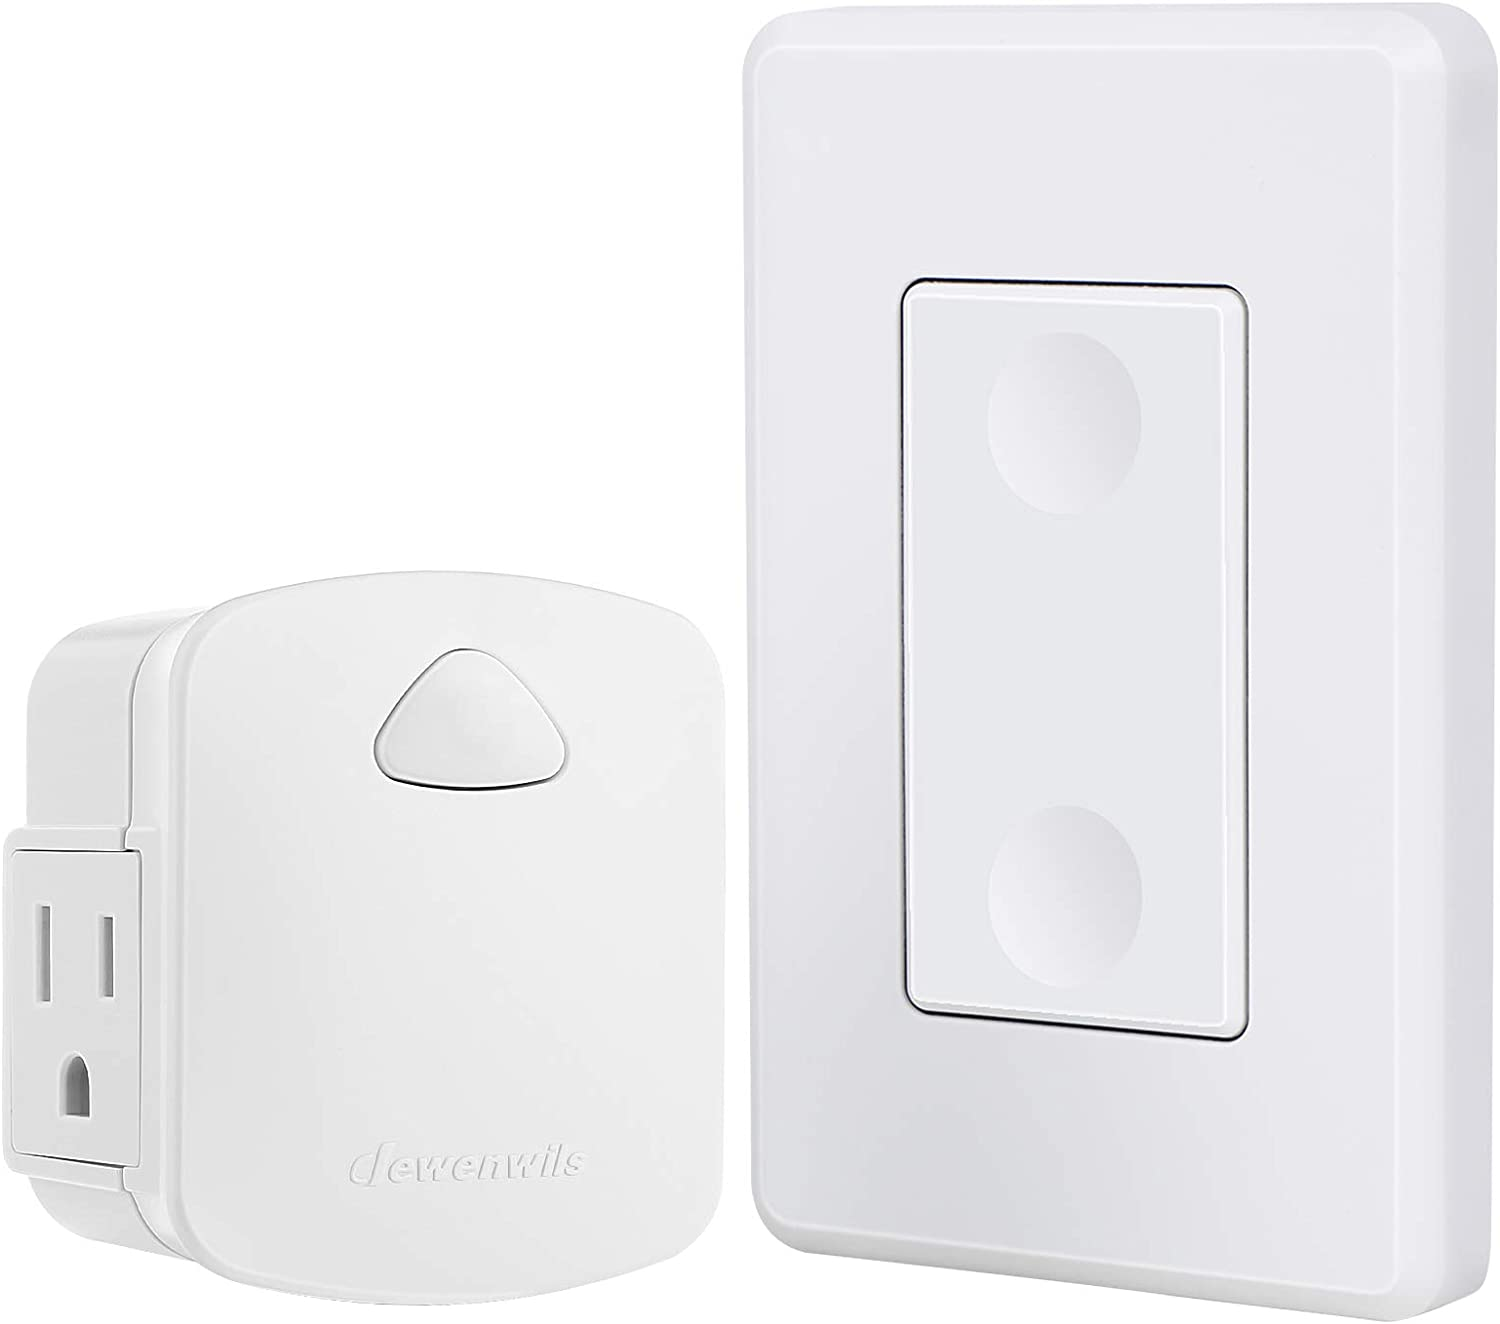 Dewenwils Wireless Light Switch Remote Control Outlet Remote Power Wall Switch For Lamps No Wiring Needed 15 Amp Heavy Duty 100 Feet Rf Range Compact Side Plug Amazon Com